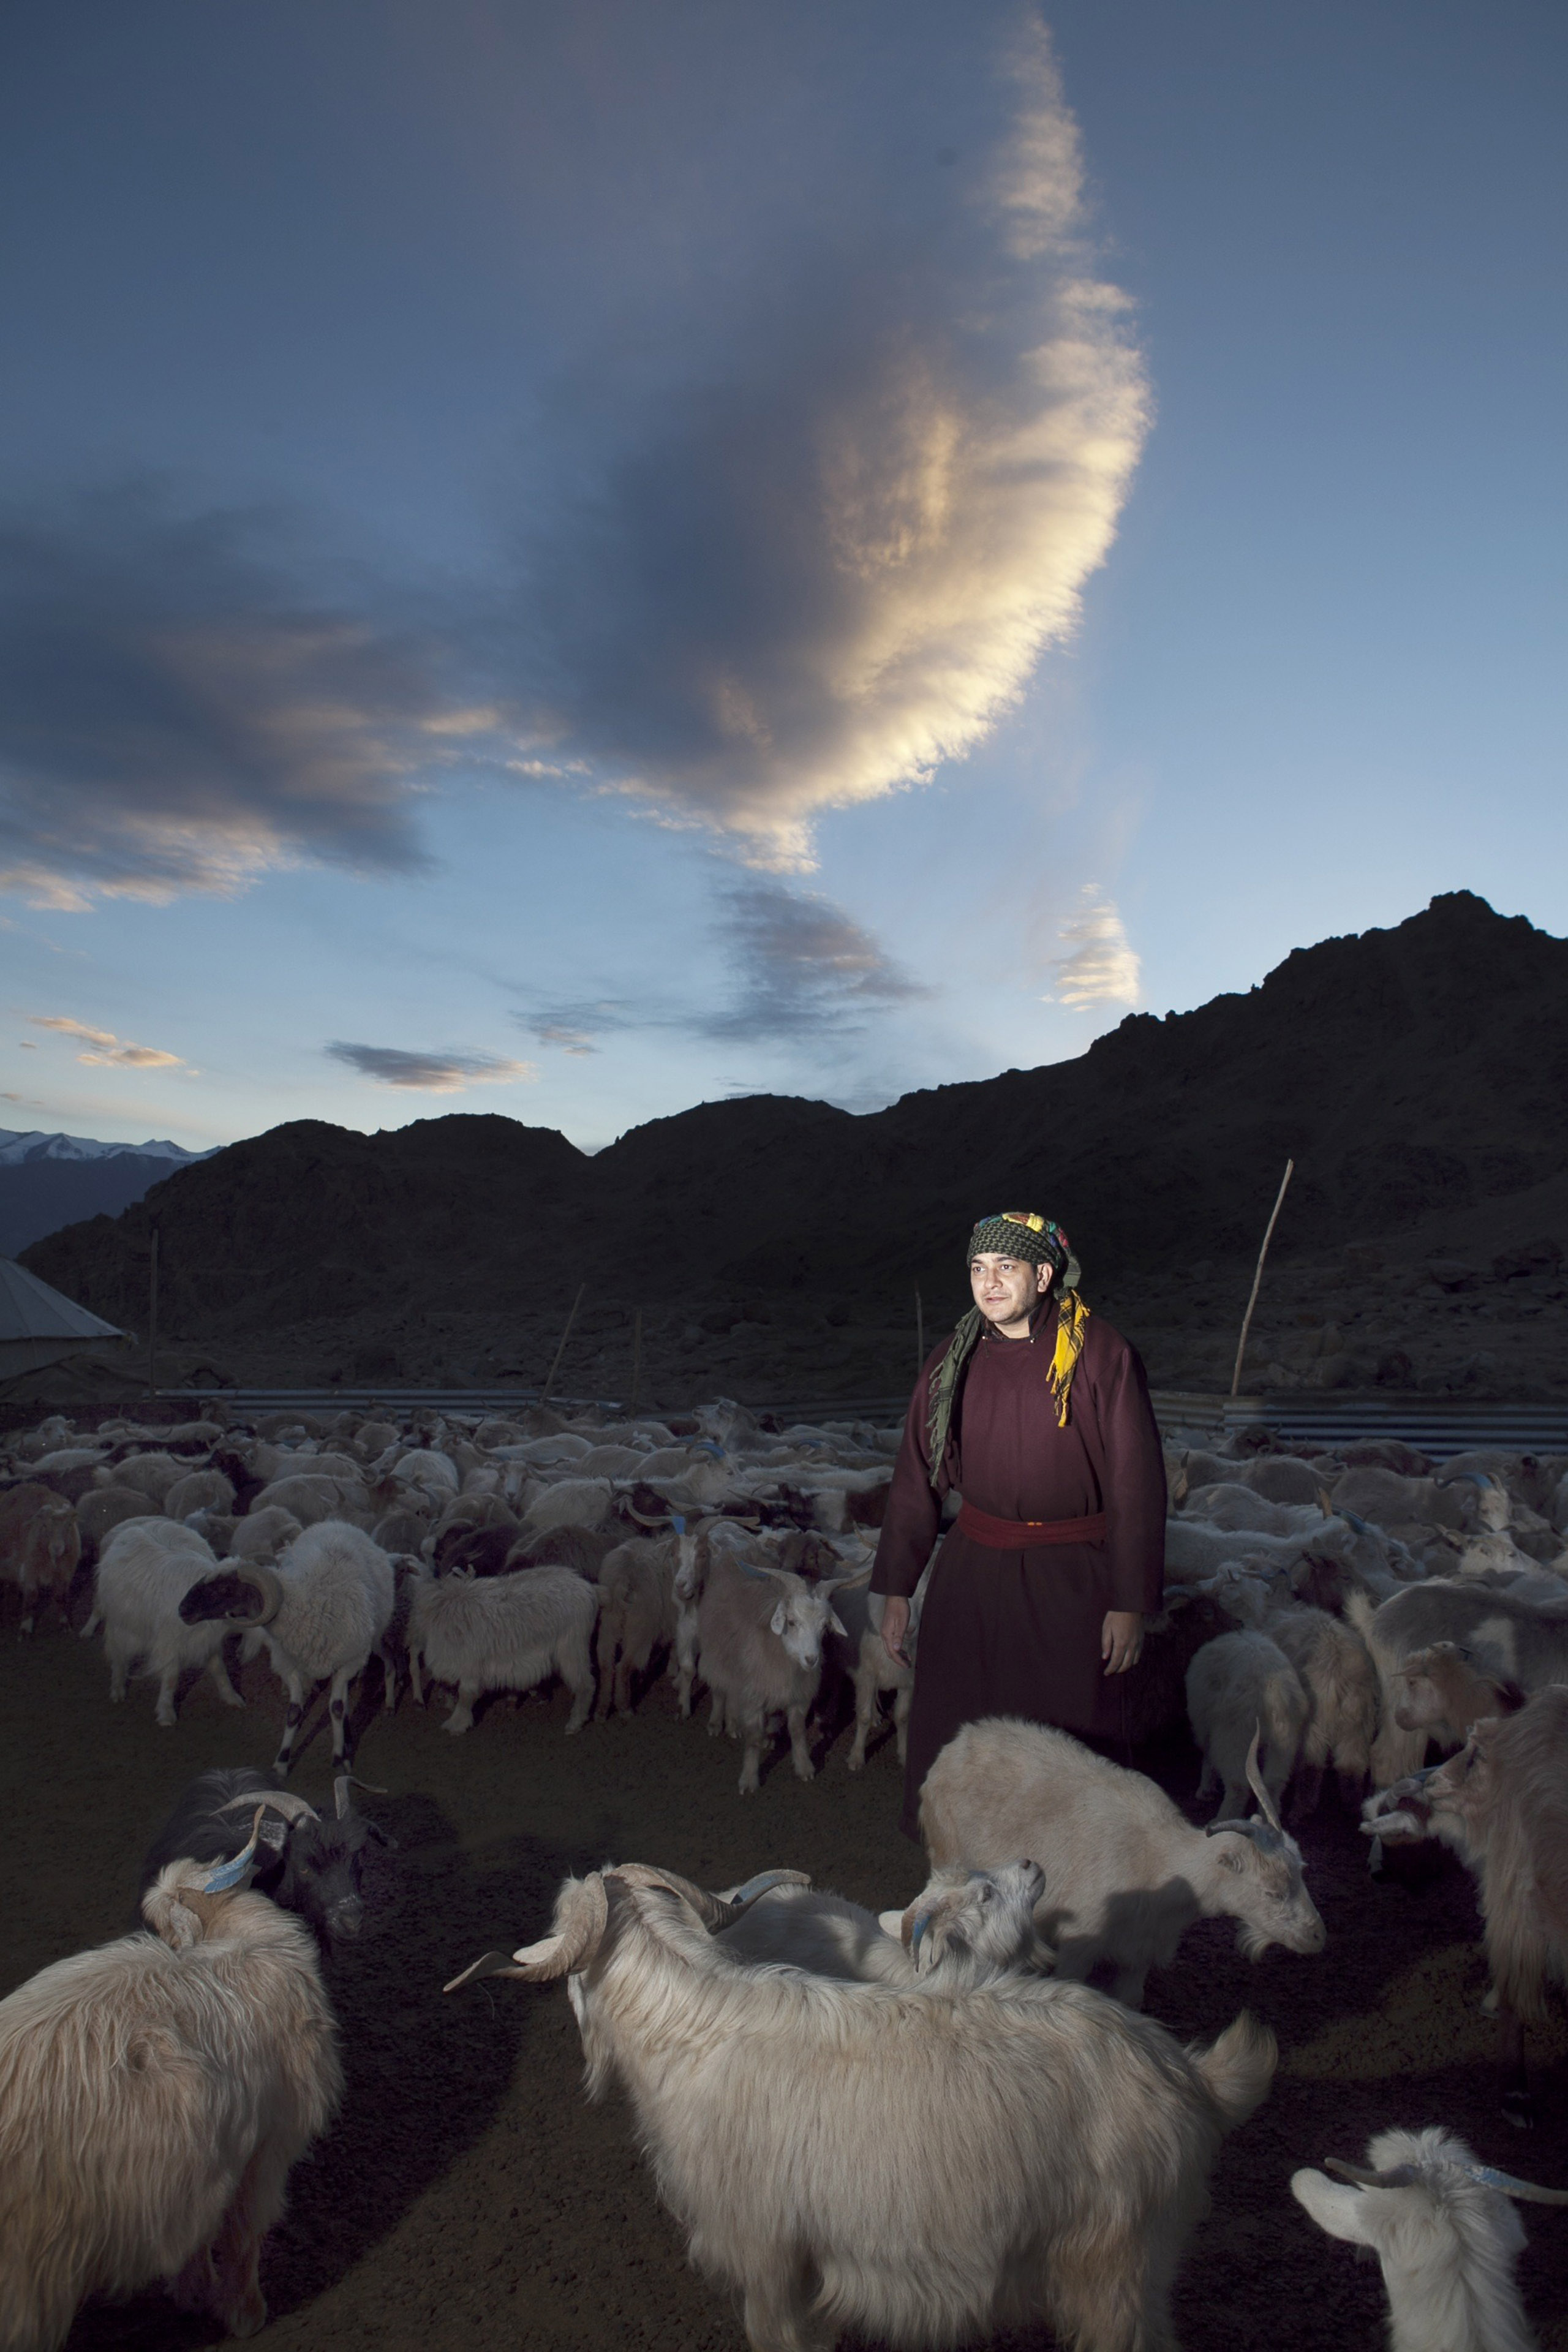 Babar Afzal in Stakmo village, situated on the outskirts of Leh. He helps Tsering Dolma with her daily chore of rounding up the goats, counting them and securing for the night.